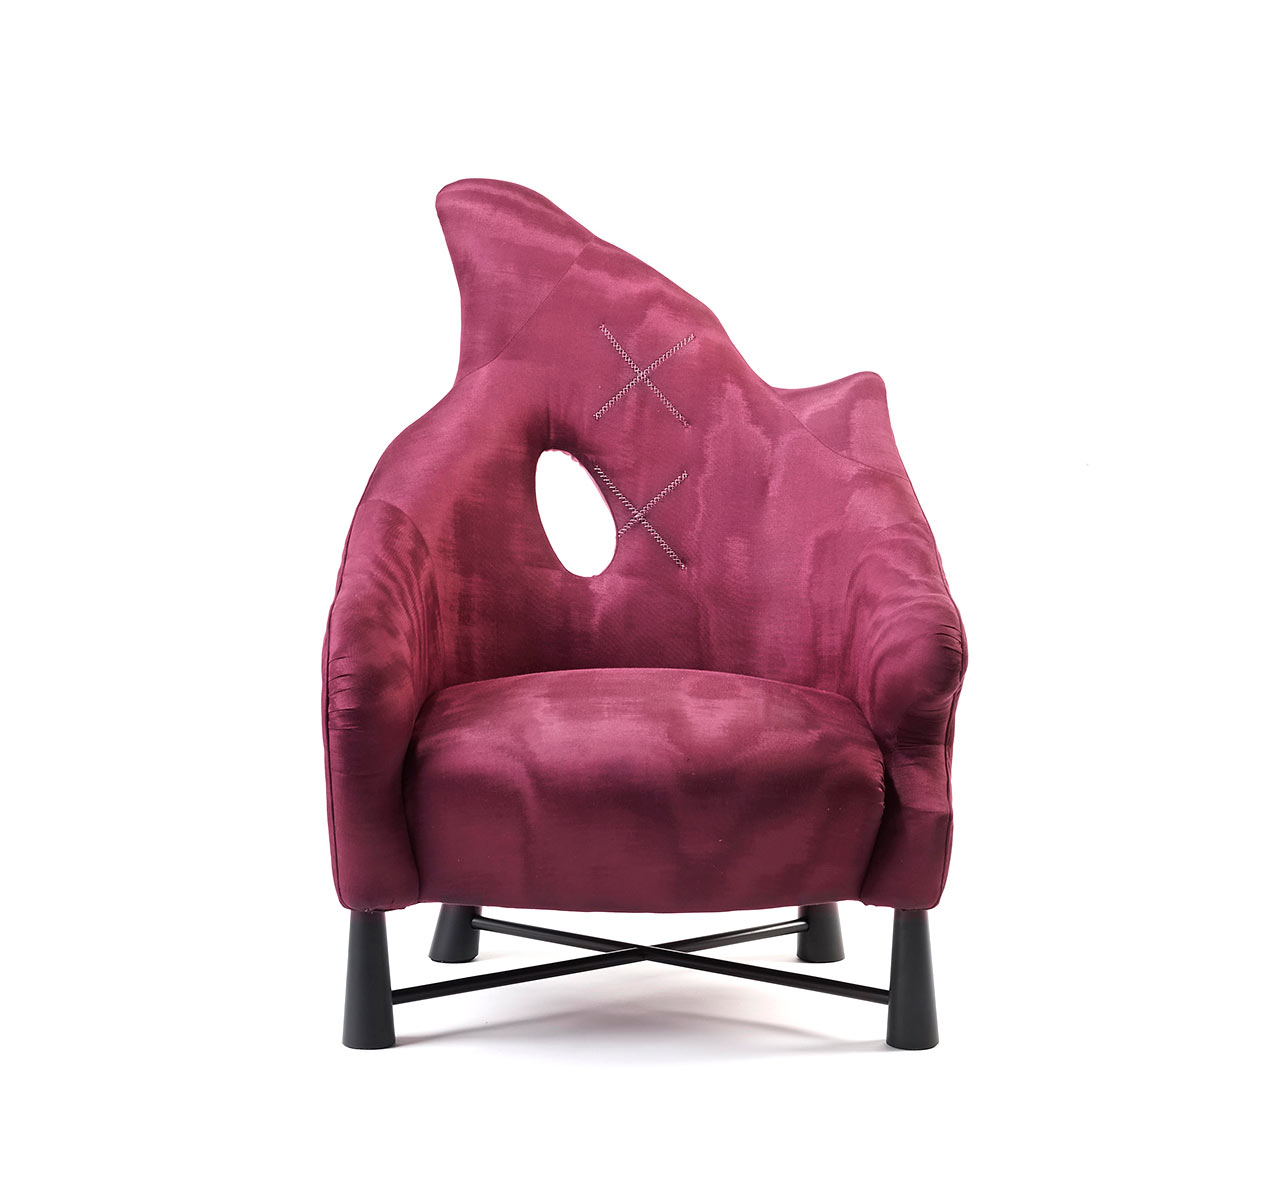 brad-ascalon-dedar-deevolution-chair-5